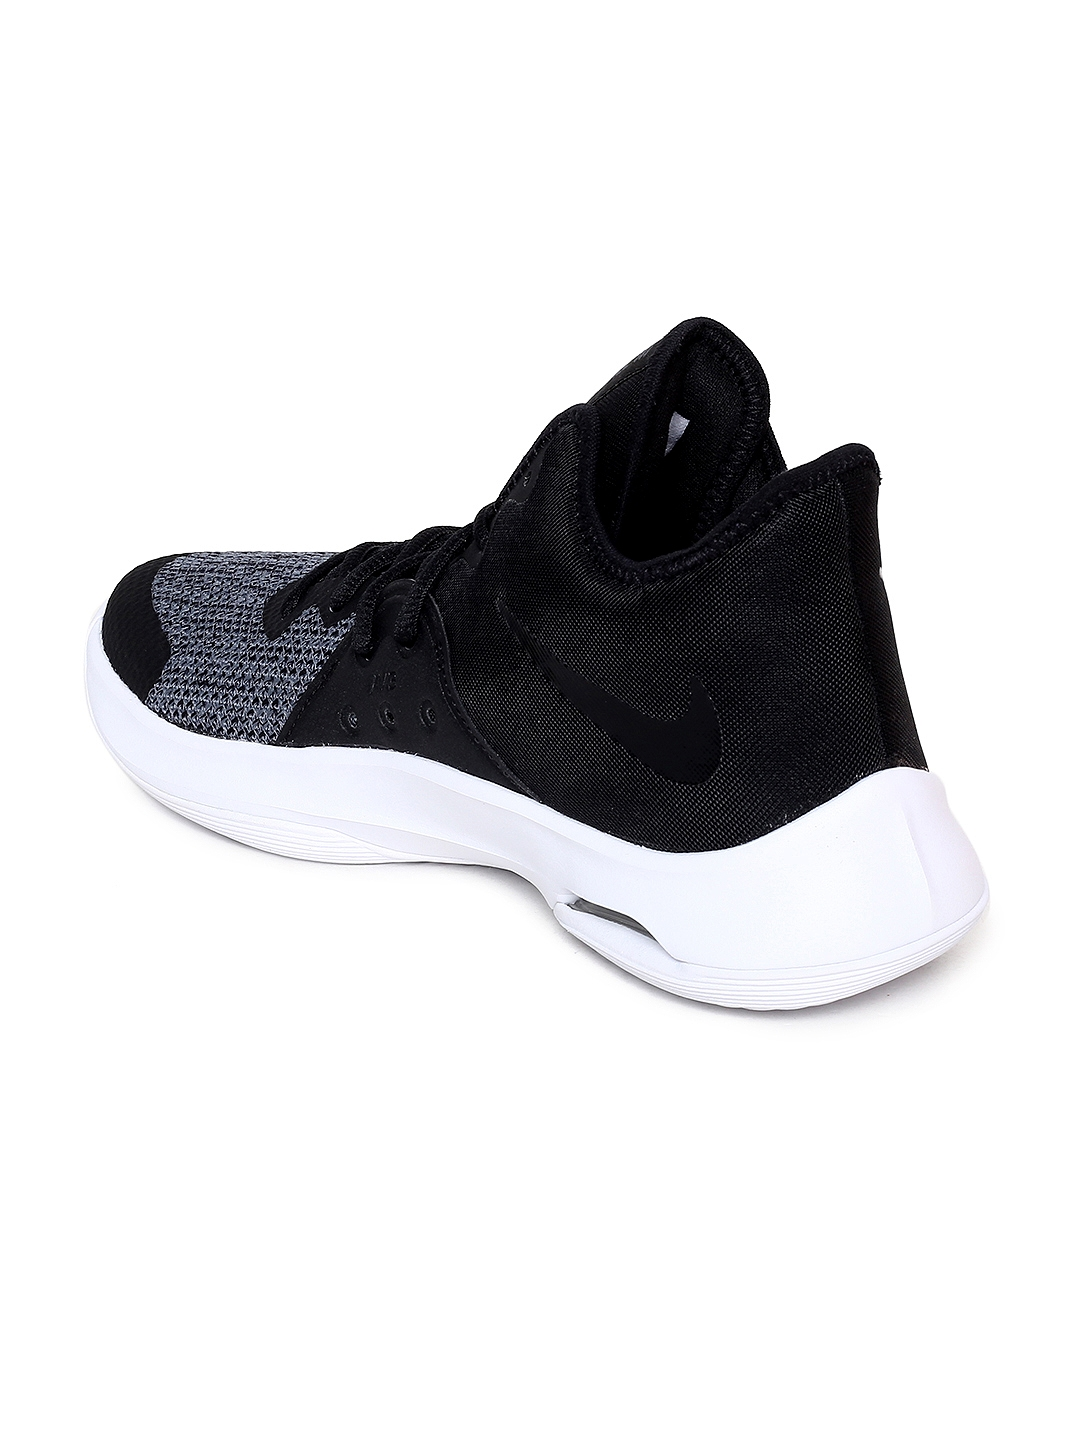 bb5670dbd9ea Nike Unisex Black   Grey Textile Mid-Top Air Versitile III Basketball Shoes